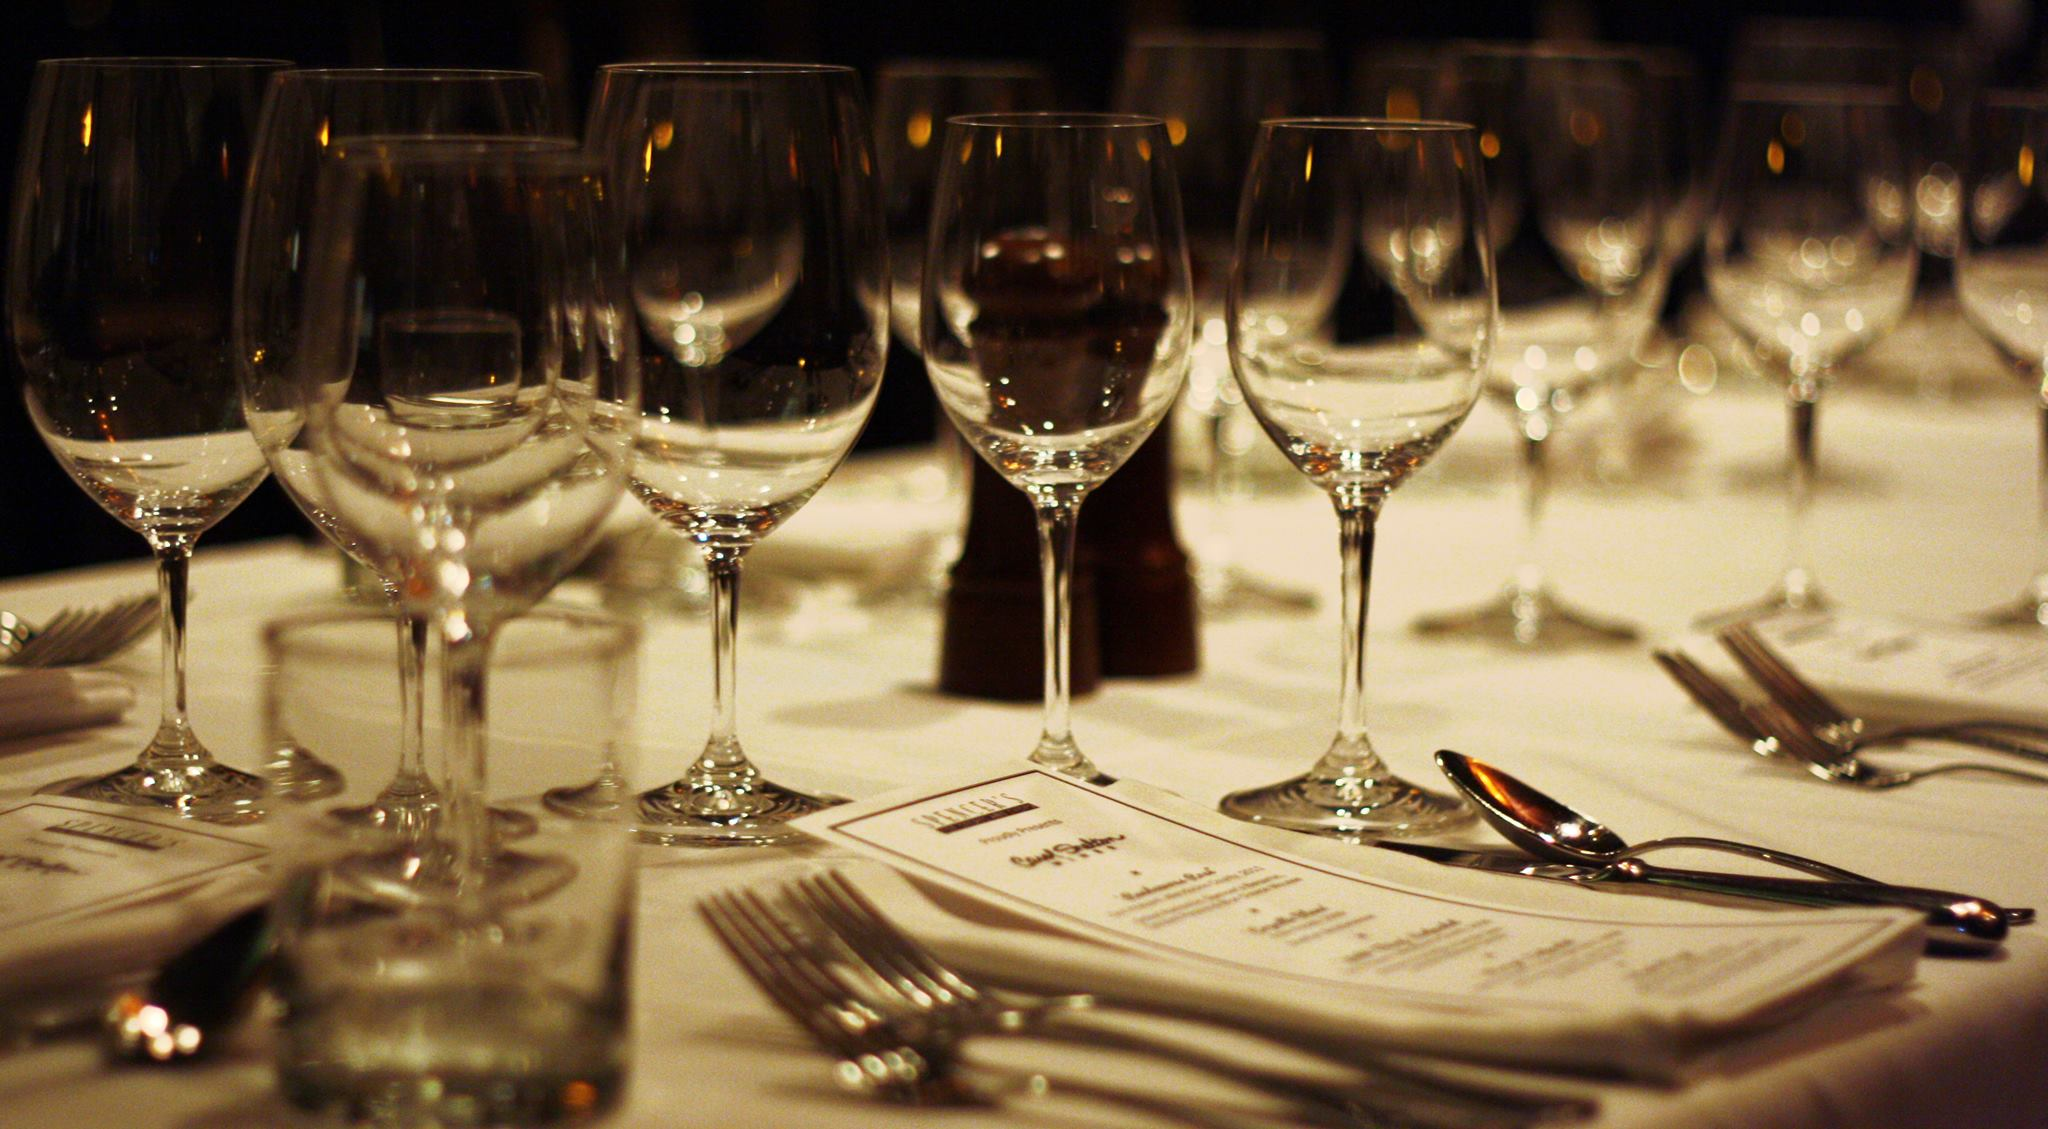 Water glasses and silverware on white table cloth